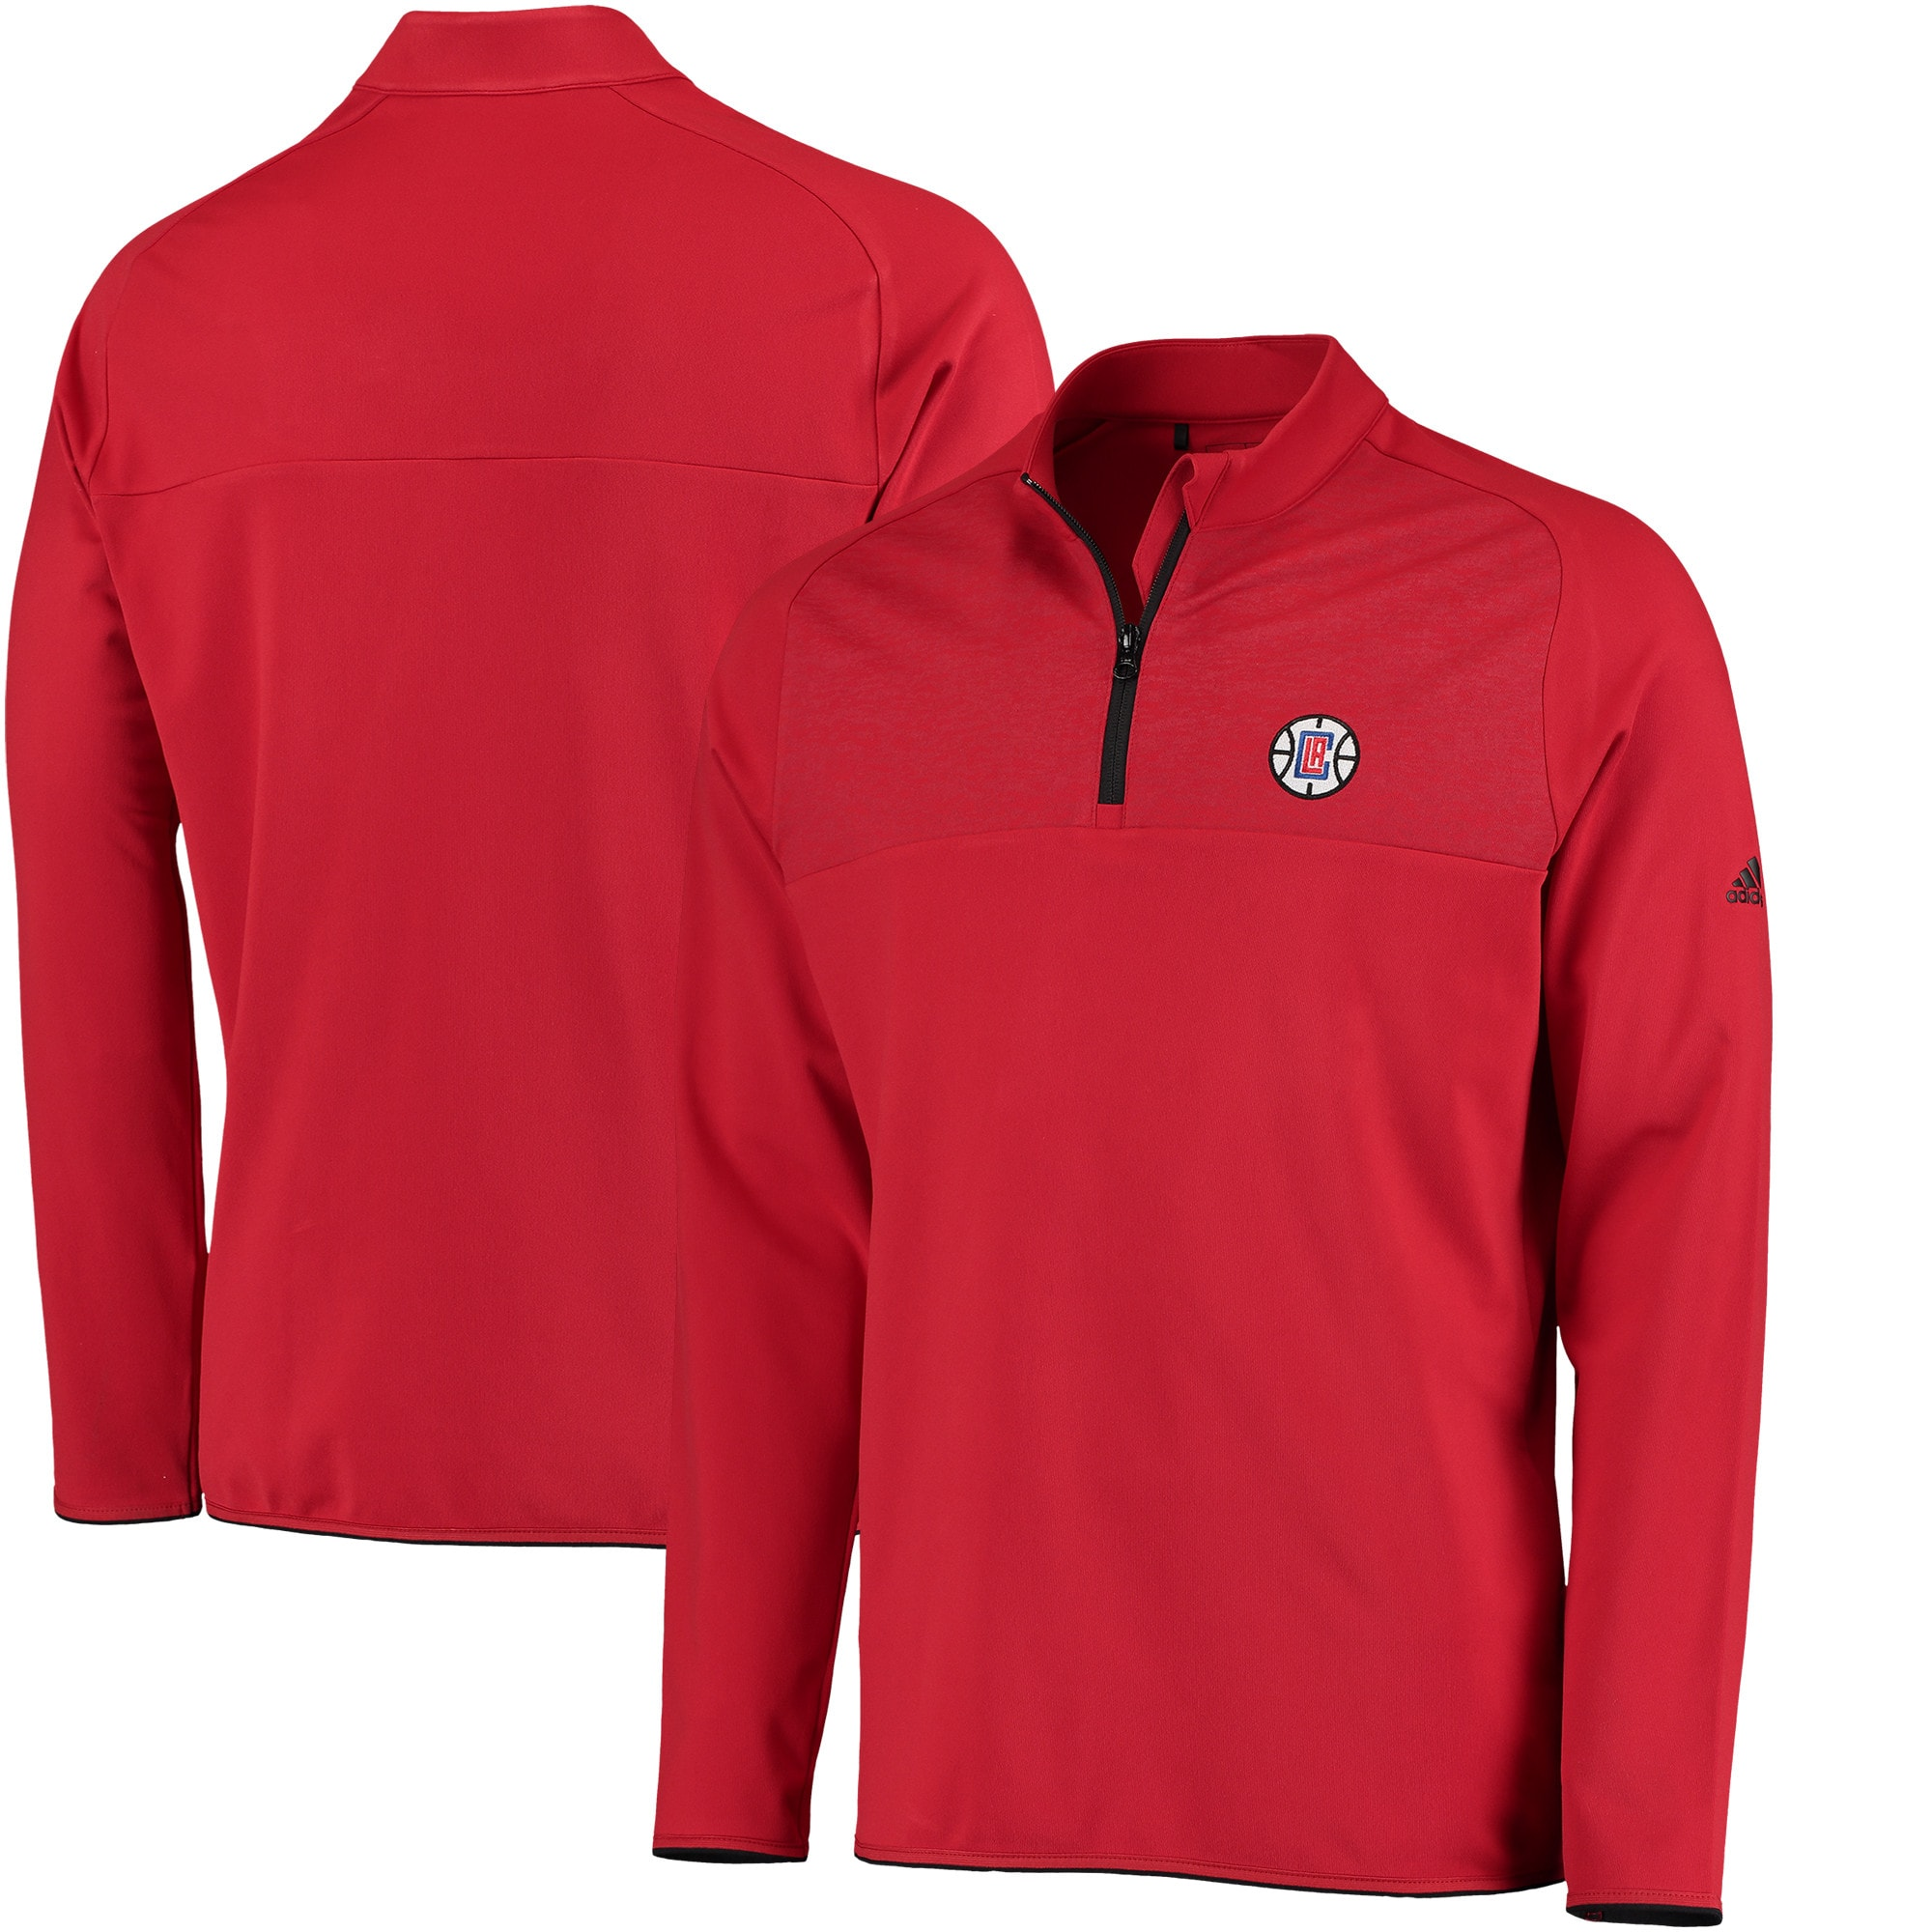 LA Clippers adidas Fashion 2 Layering climawarm Pullover Jacket - Red